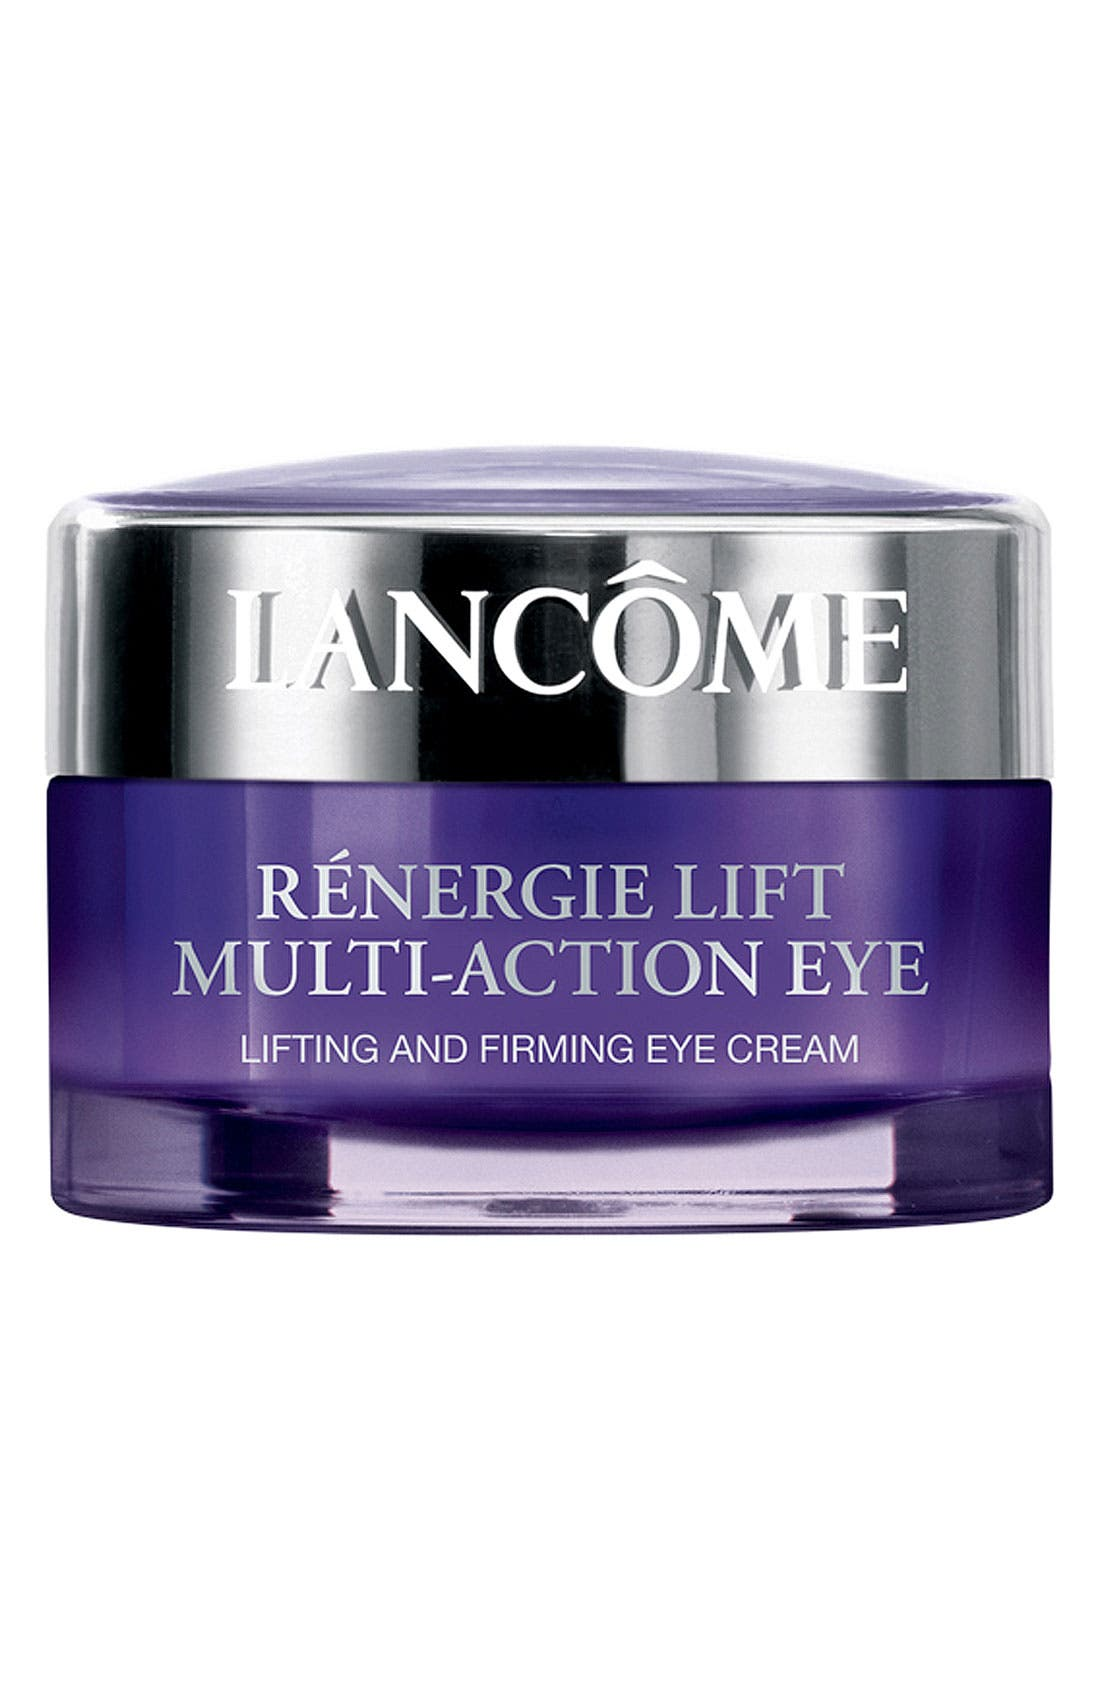 Lancome Renergie Lift Multi-Action Lifting And Firming Eye Cream